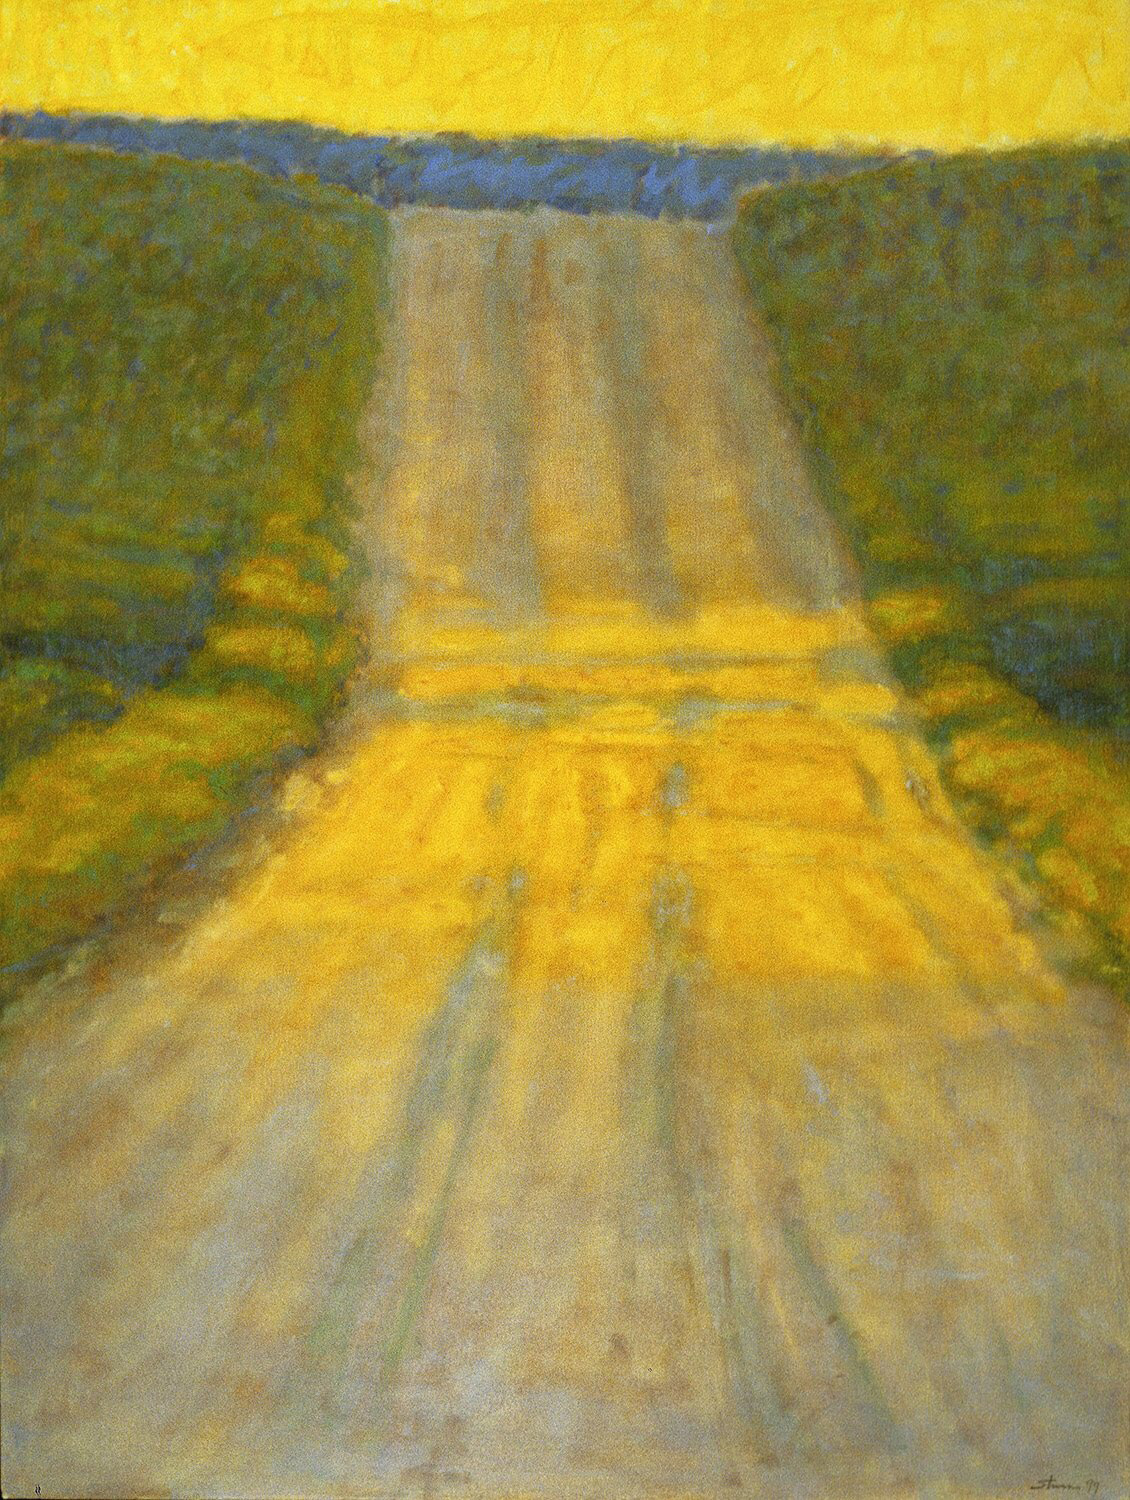 Country Road | 1999  Surprisingly this idea was inspired by a contemporary Japanese artist (I forget his name) who did some very minimal landscapes of a road, a river, almost like the color field painters like Rothko. That influence, along with Regionalism of the 30's inspired me to take this familiar theme of a country road. This particular one came from rural Michigan. I loved the Hopper-esque low light of morning or early evening raking across the dirt road... a slice of Americana.